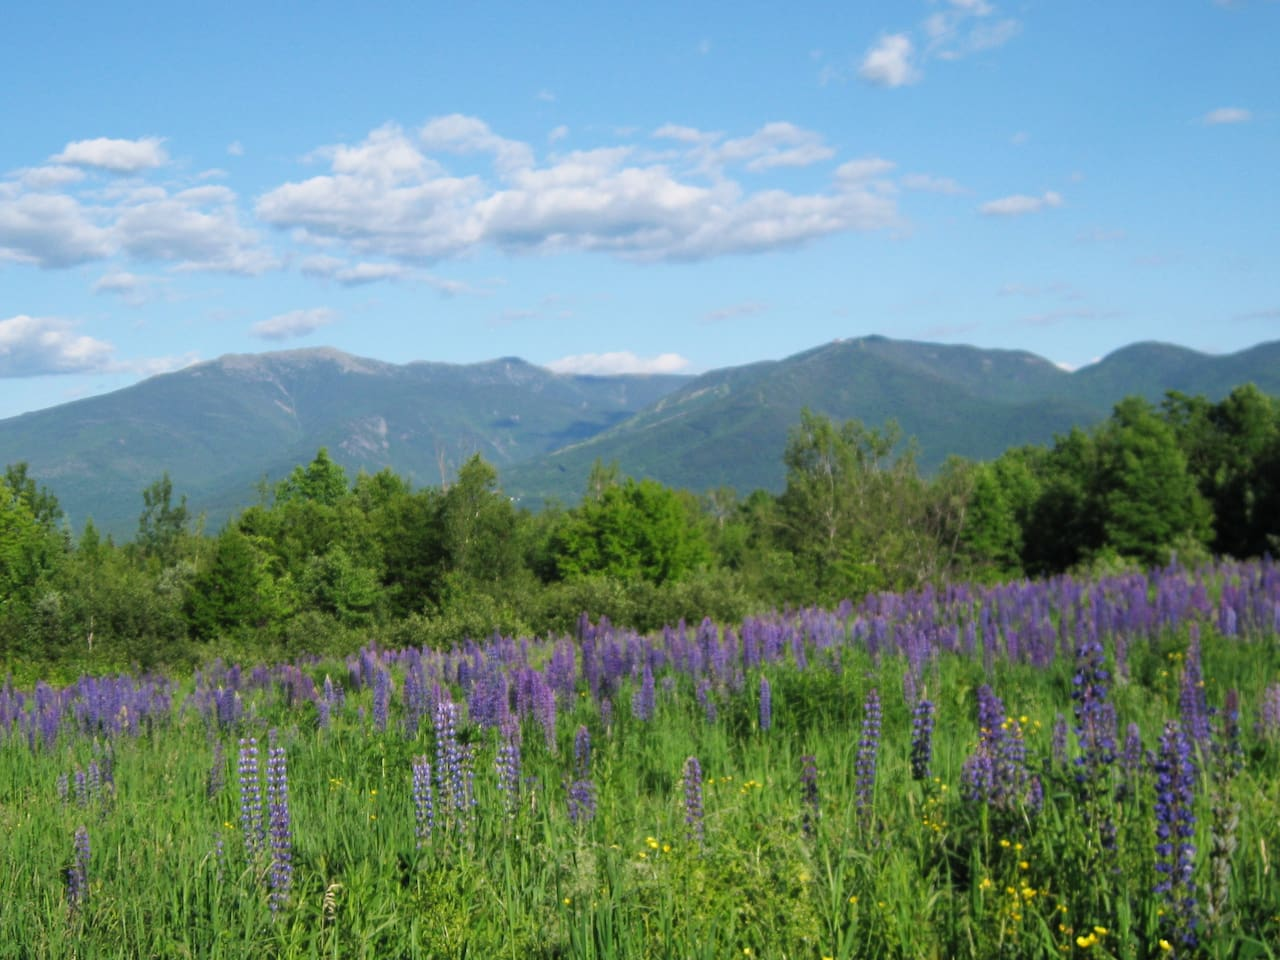 Abundant lupines surround the chalet  & local fields in June for about 3 weeks.